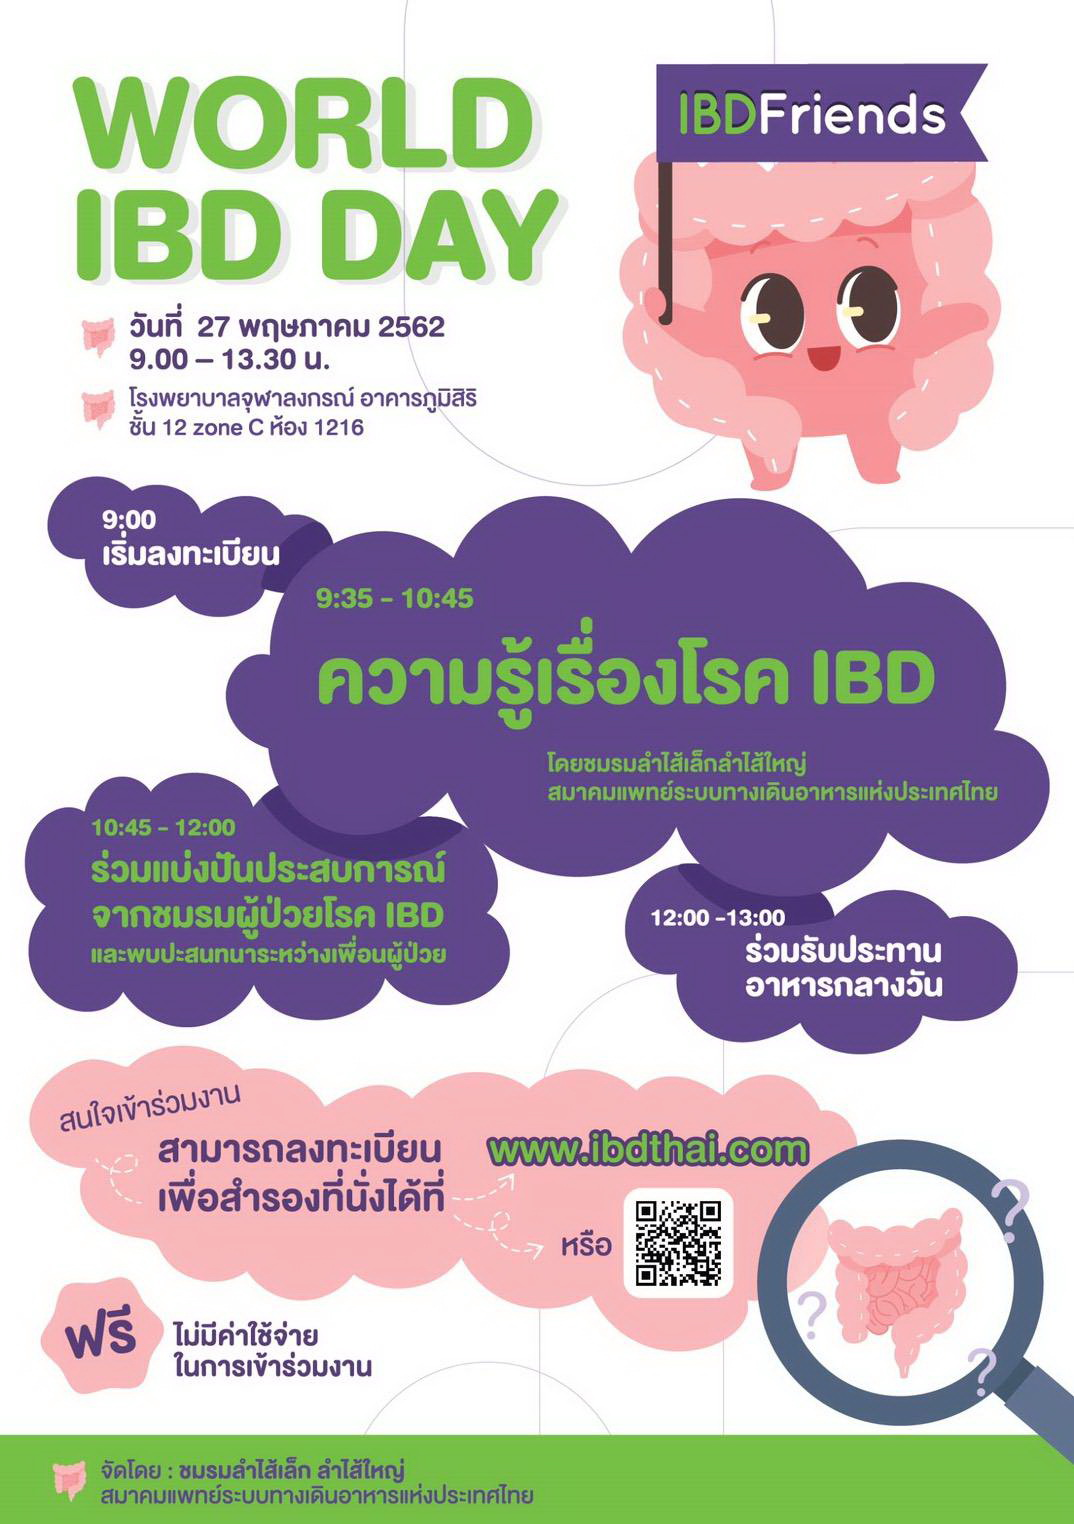 World IBD Day : May 27, 2019